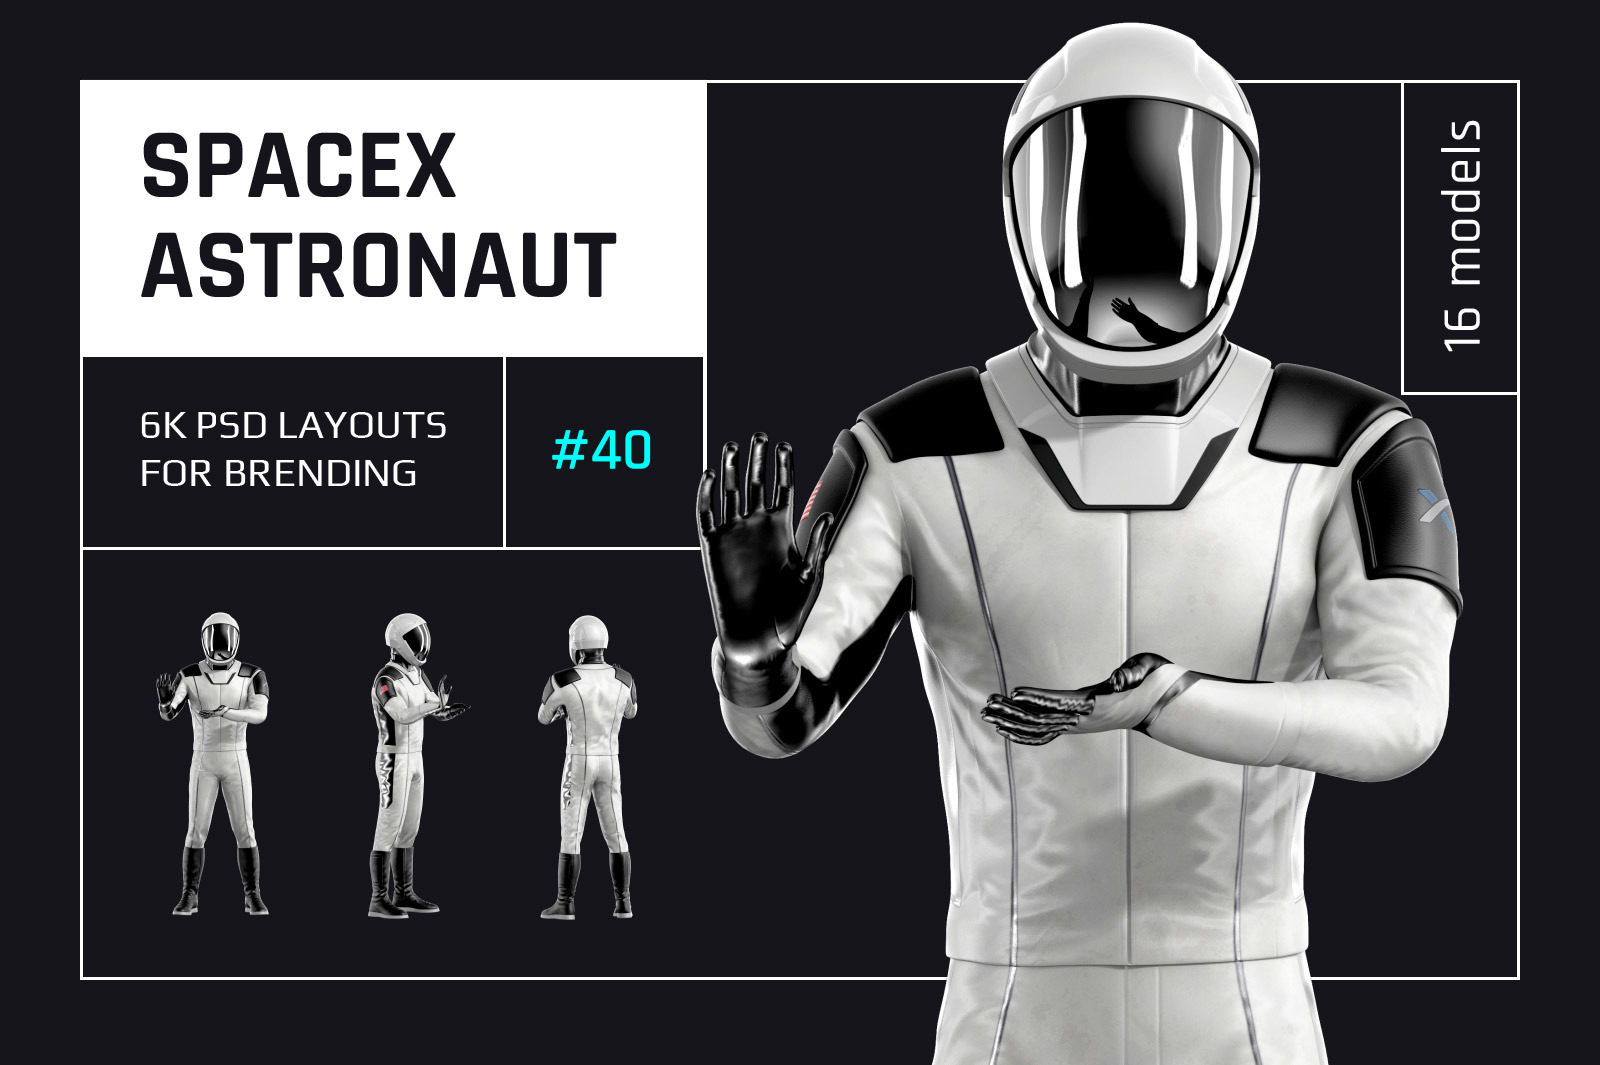 PSD Mockup 3D model SpaceX Astronaut #40